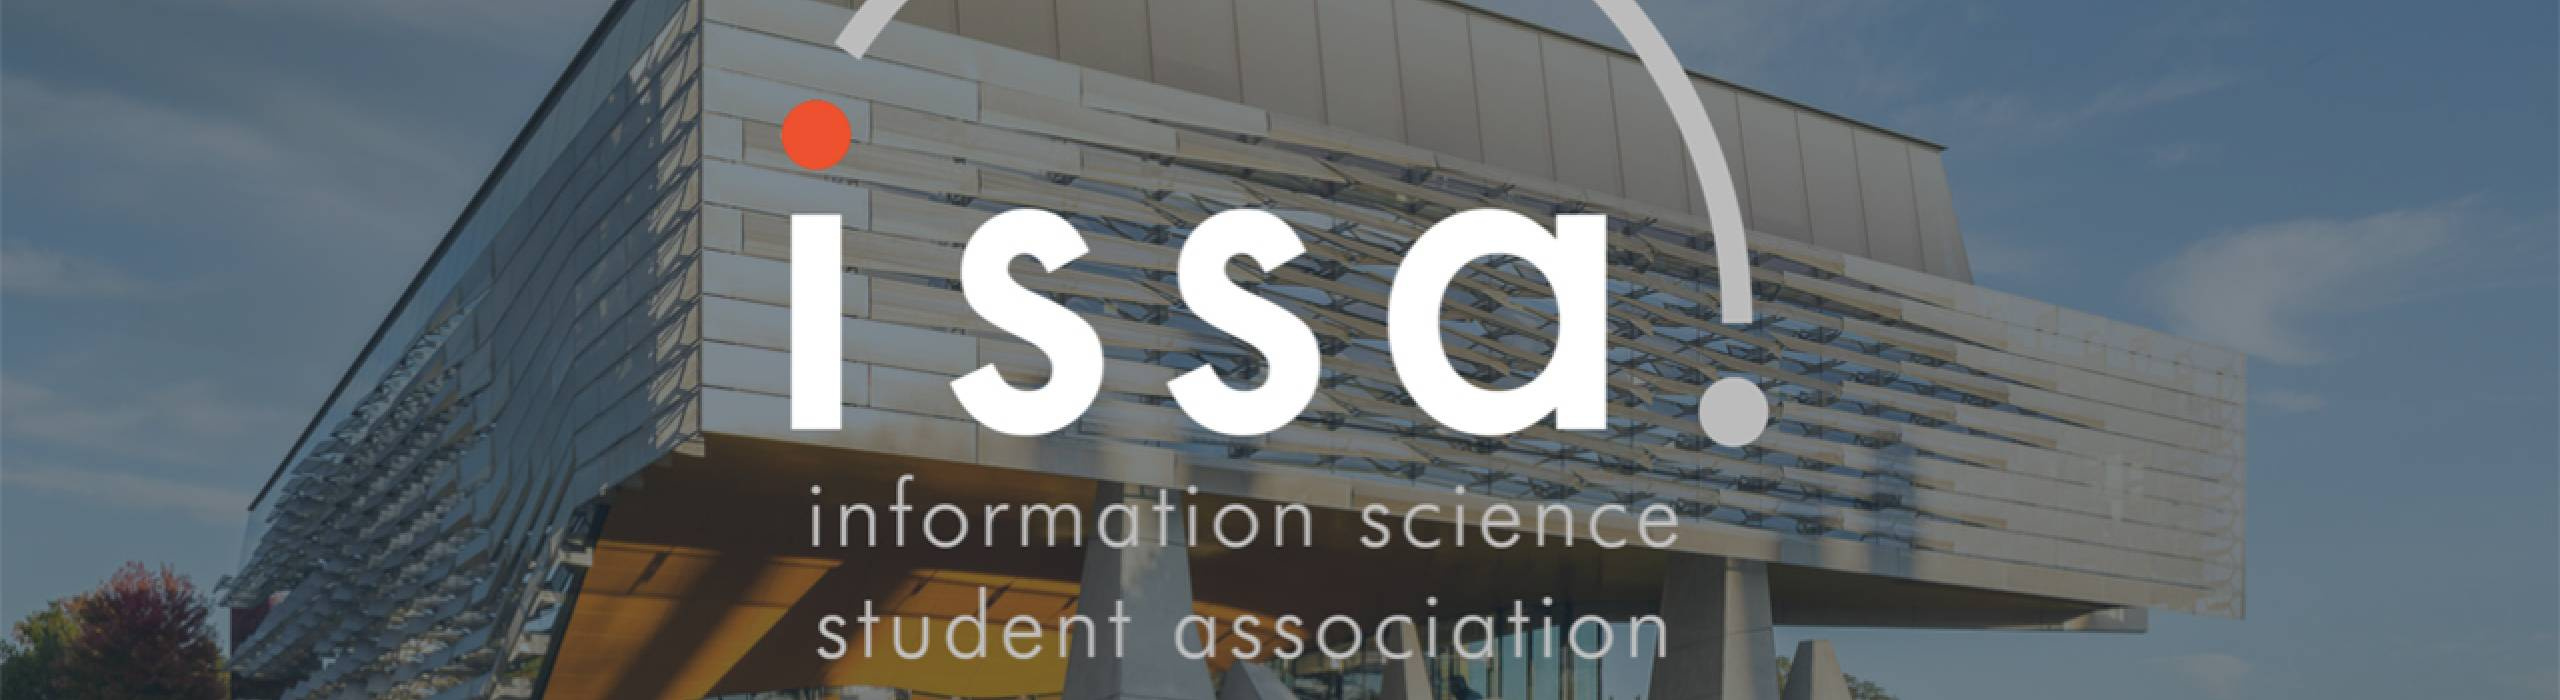 The ISSA logo